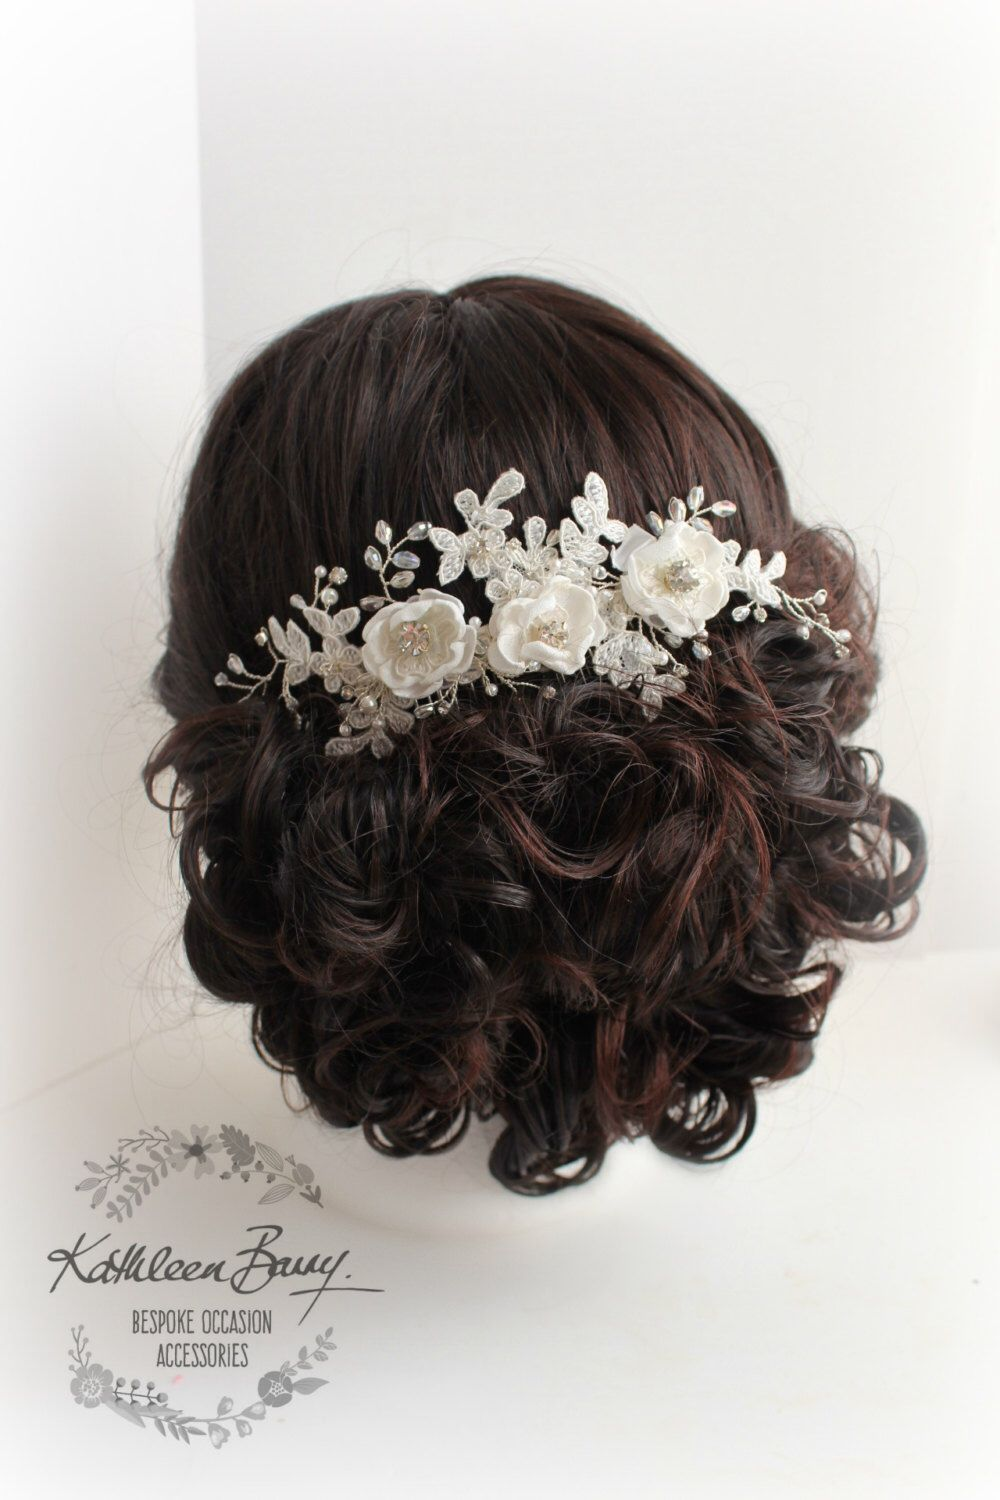 pin by paige noel on make up & hair | wedding hairstyles